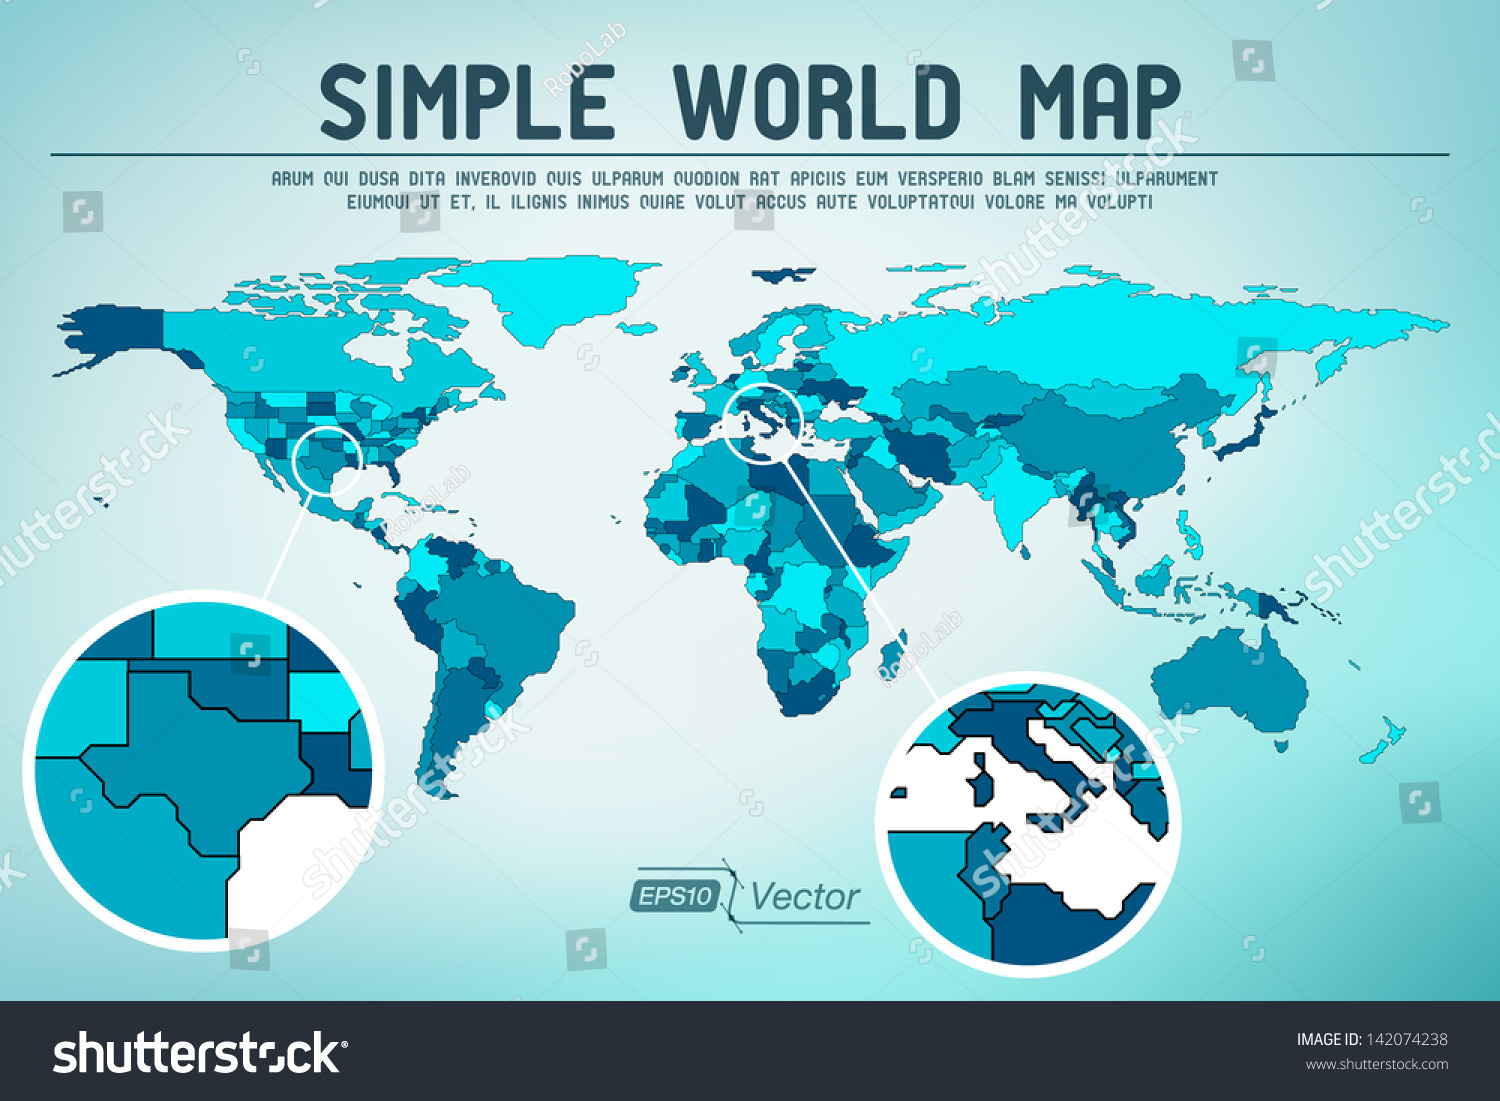 Abstract simple world map eps 10 vector vector de stock142074238 abstract simple world map eps10 vector design gumiabroncs Image collections